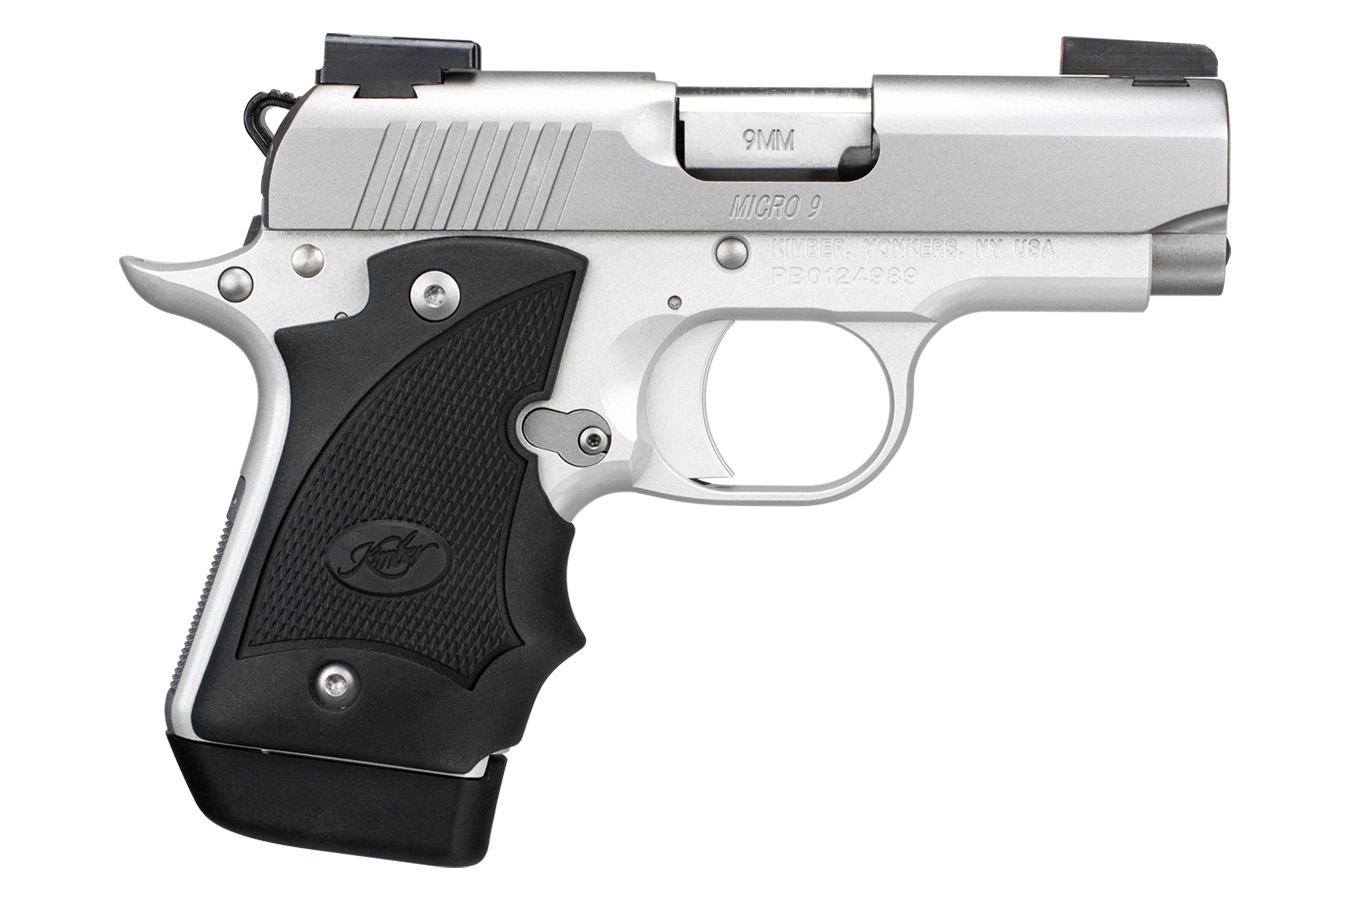 No. 13 Best Selling: KIMBER MICRO 9 STAINLESS (DN) 9MM